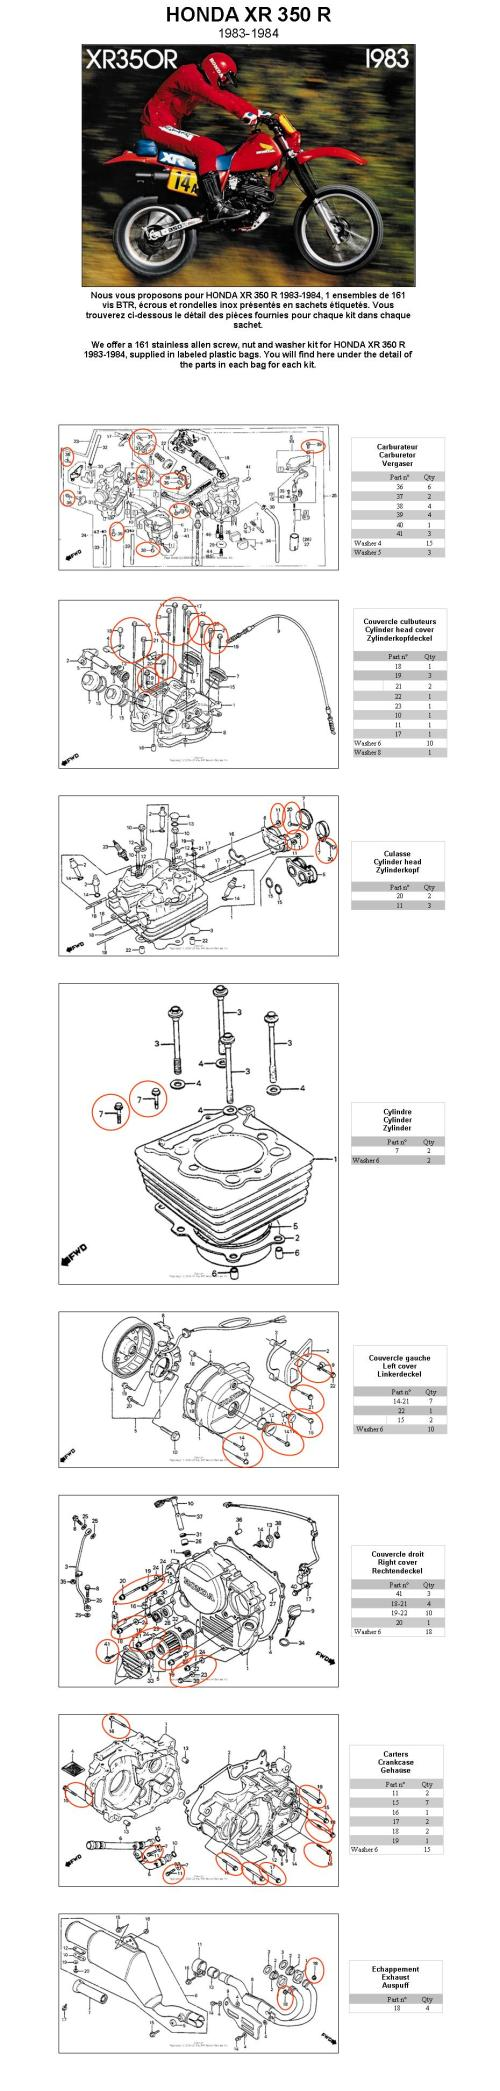 small resolution of xr350r wiring diagram